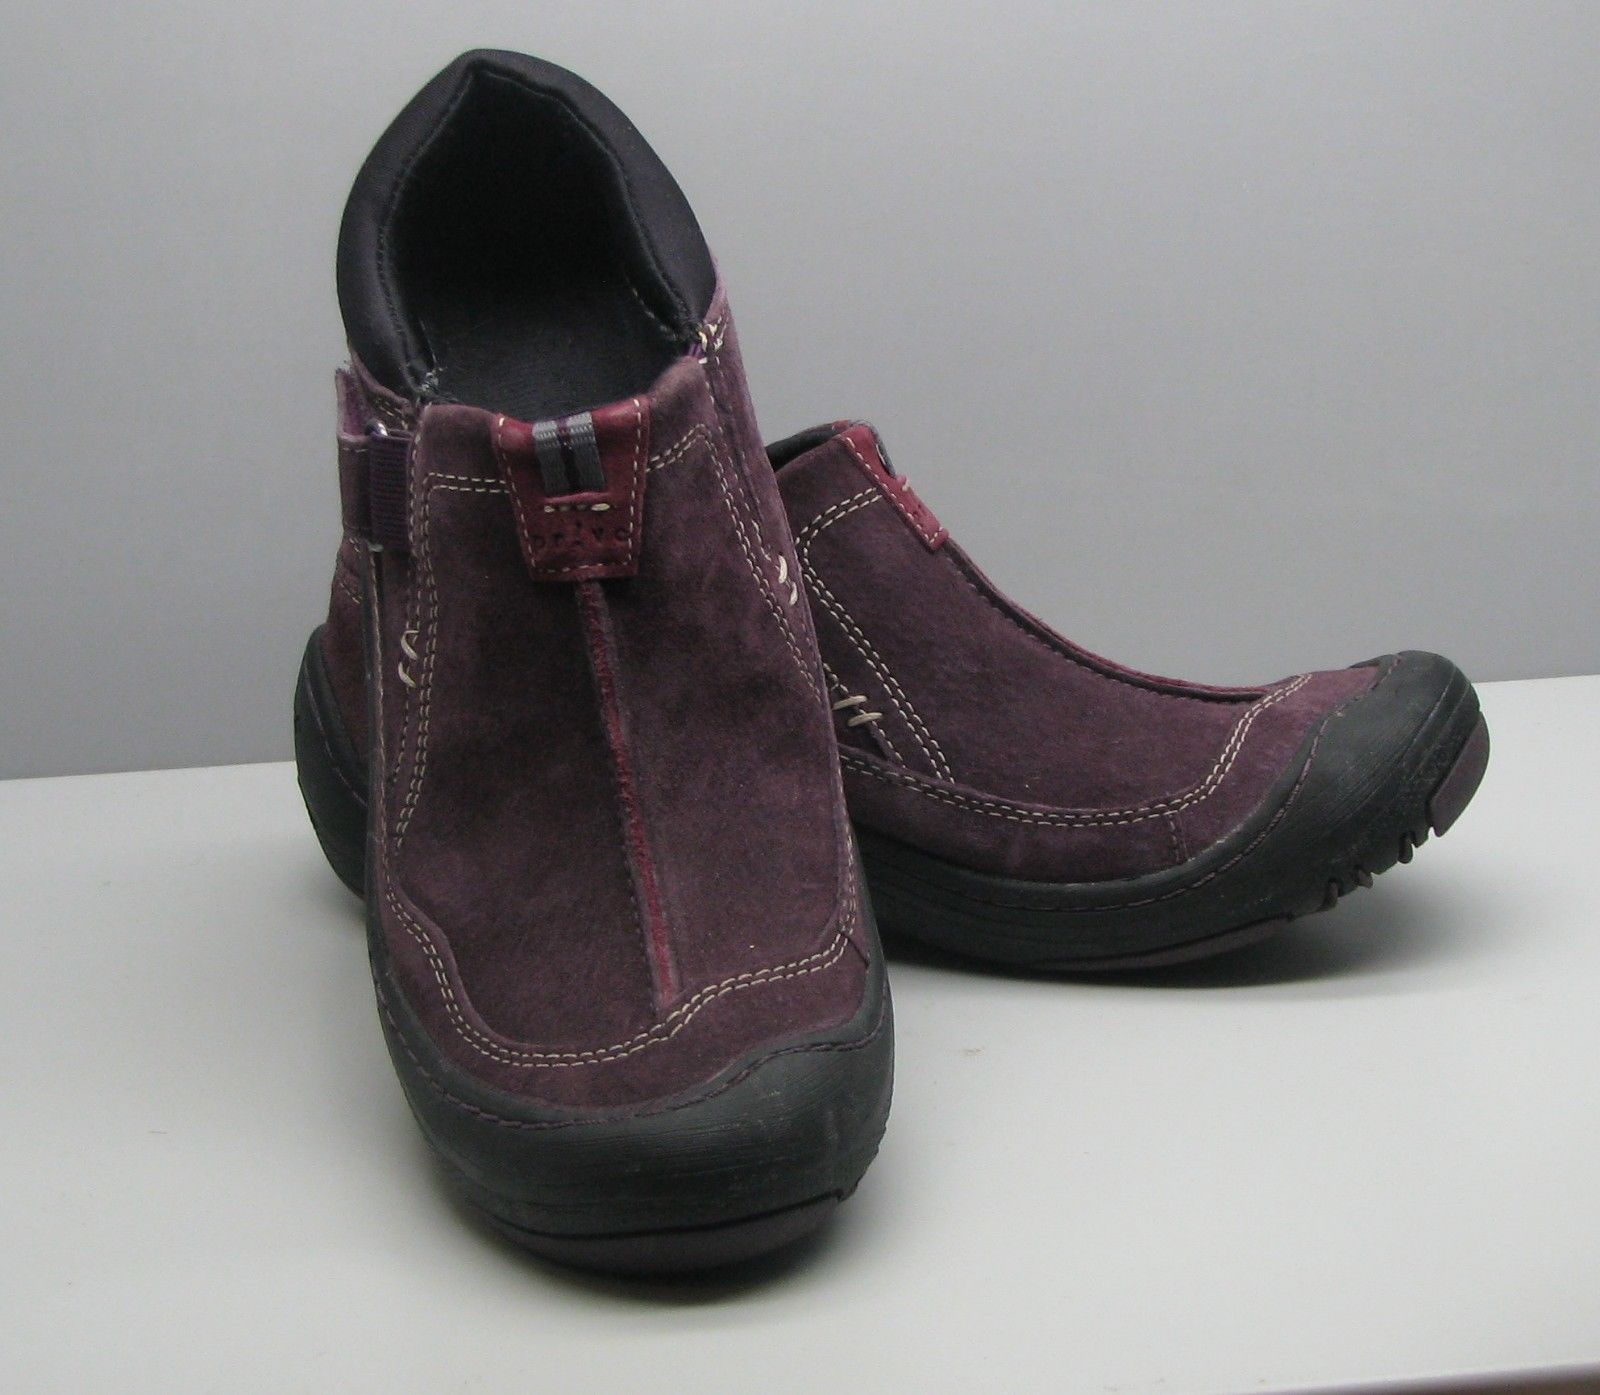 Clarks Privo Plum Leather SHOES Woman's 6.5 M Slip On